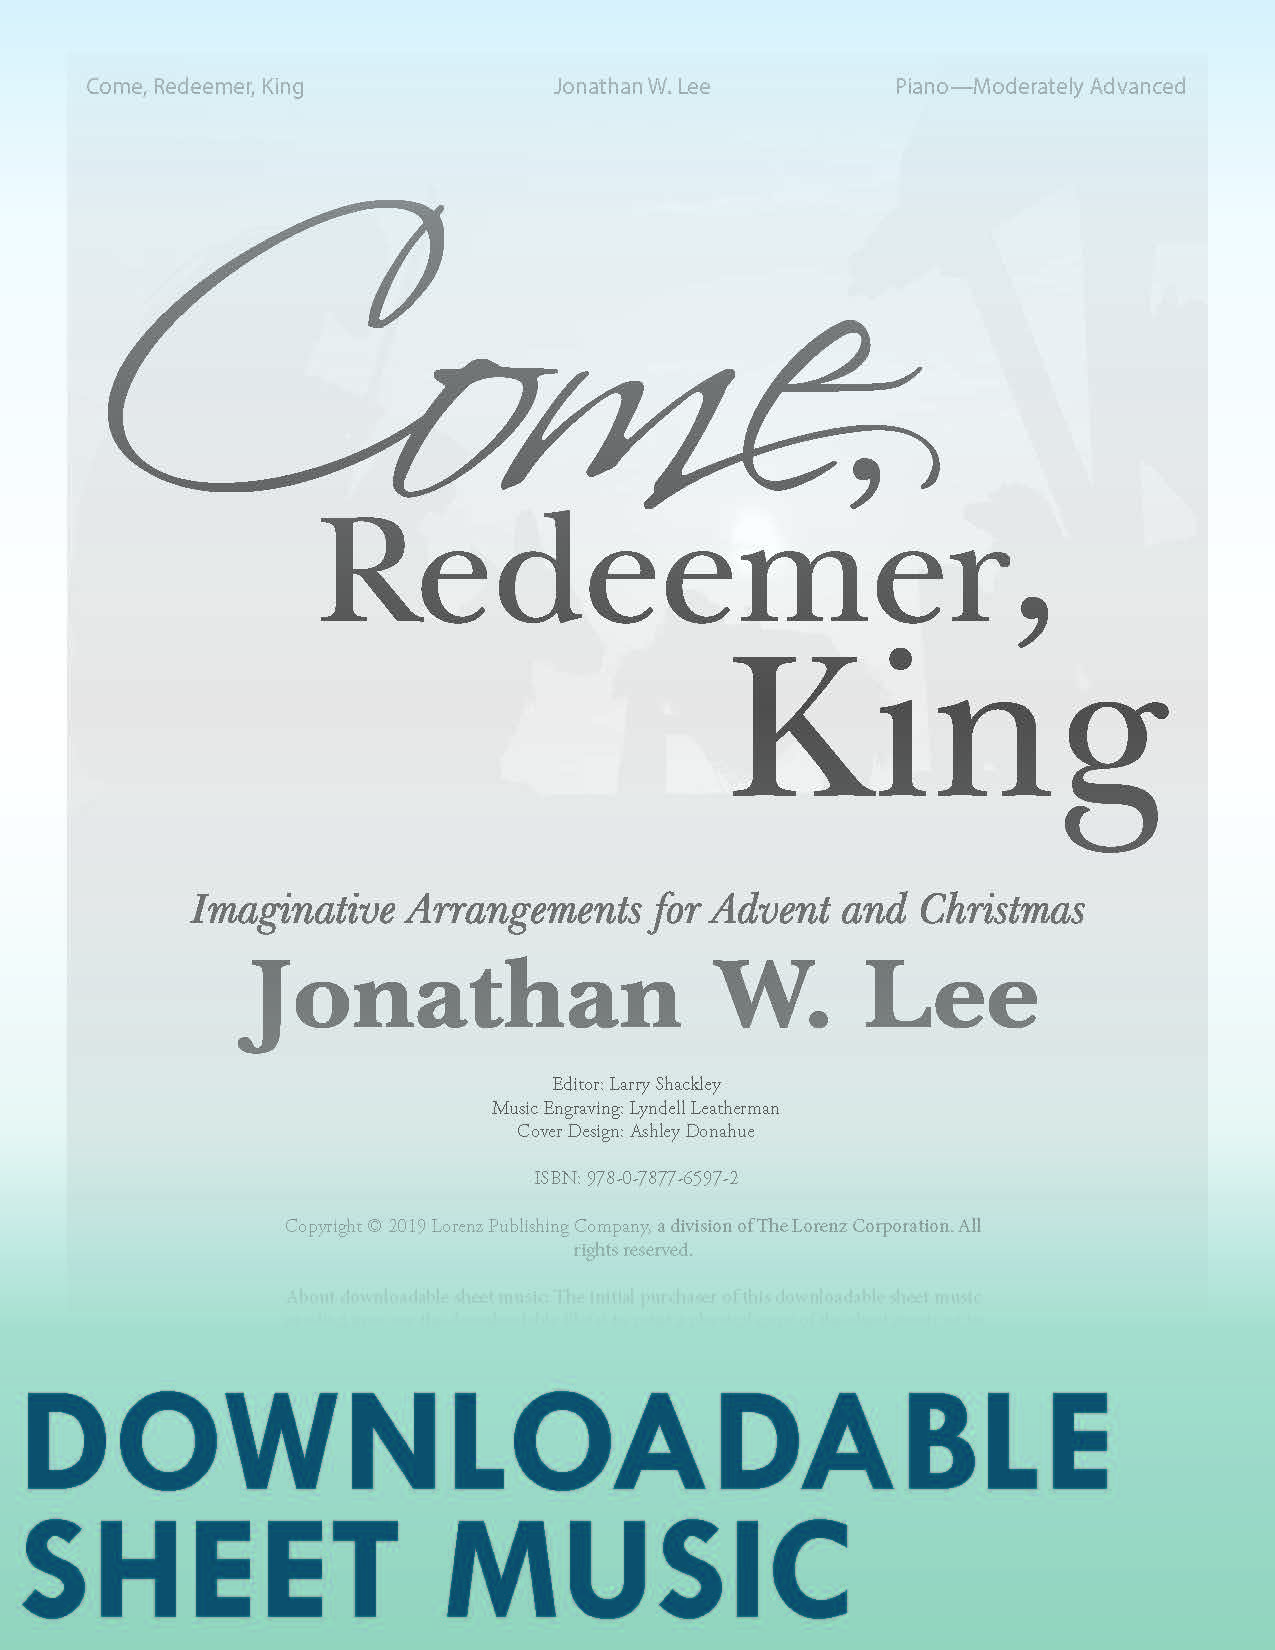 Come, Redeemer, King! - Digital Download